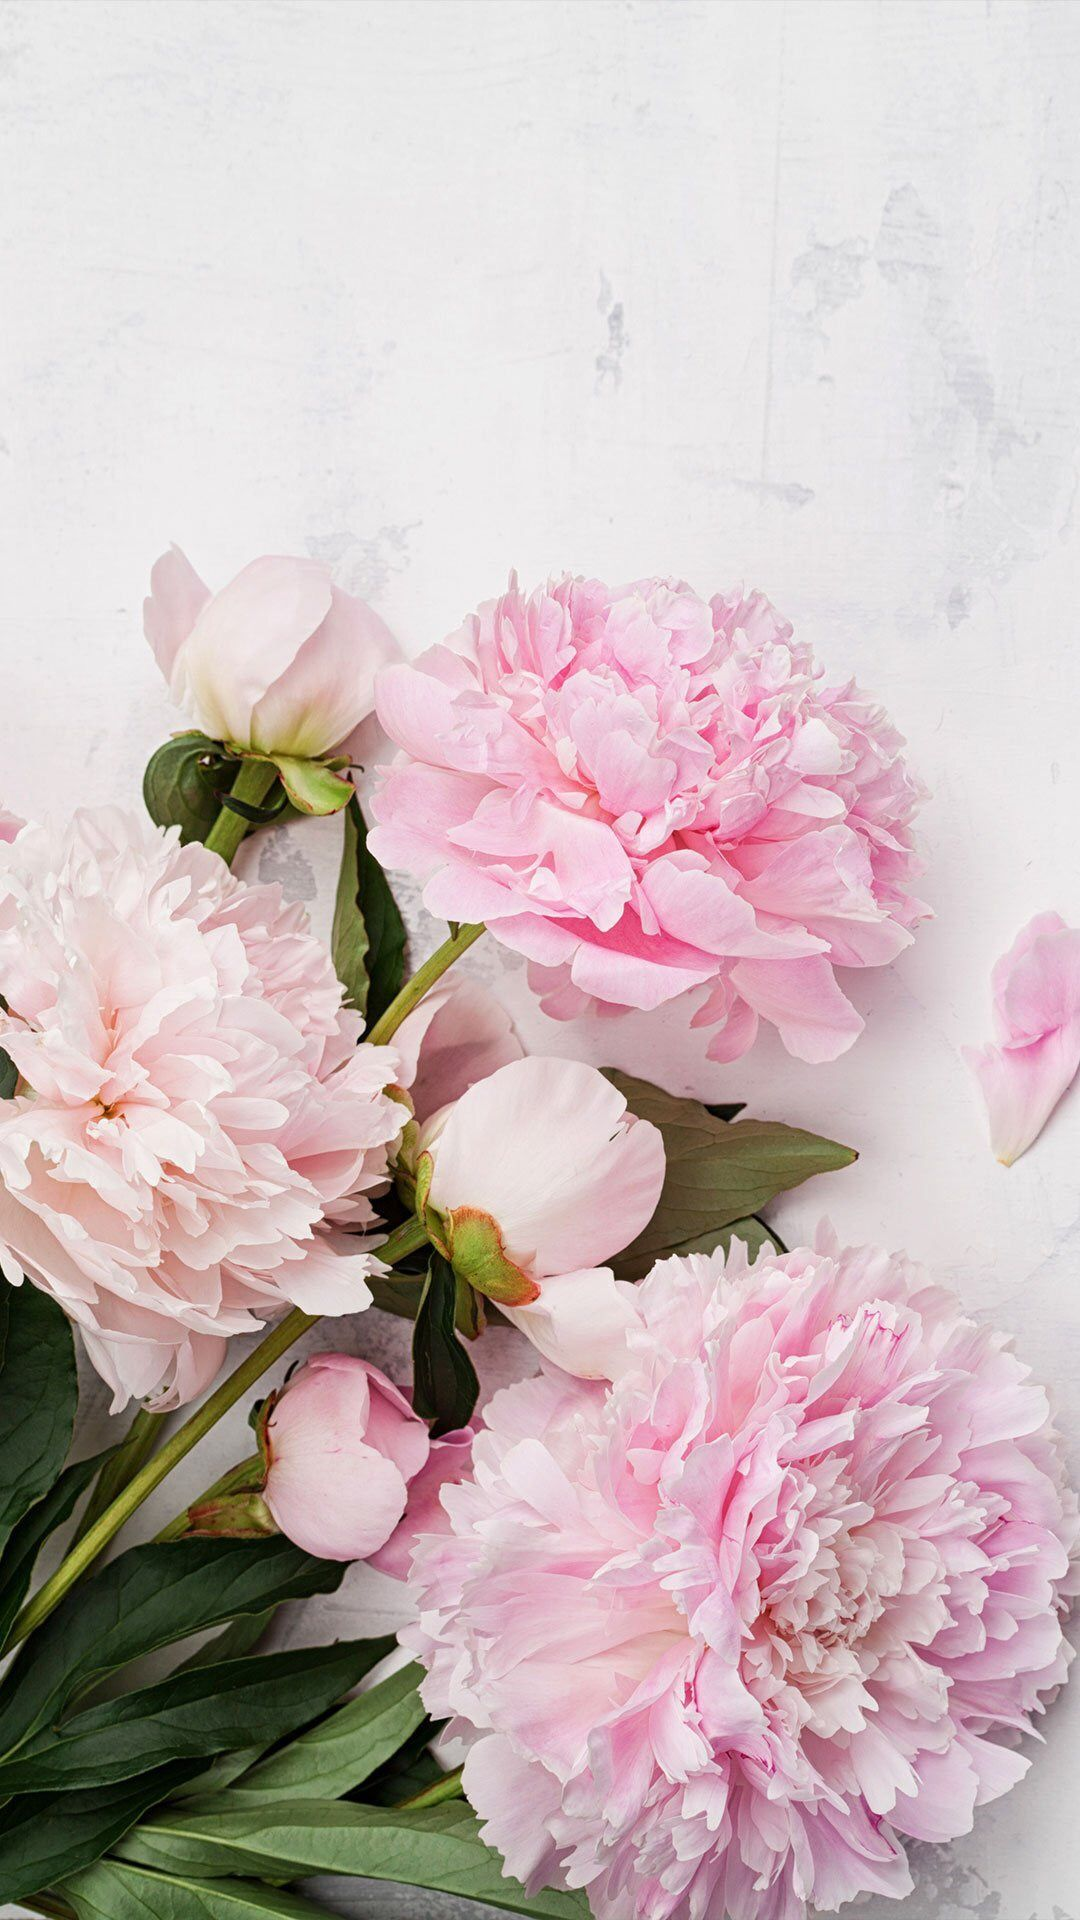 IphoneWallpapers Flower backgrounds, Pink flowers